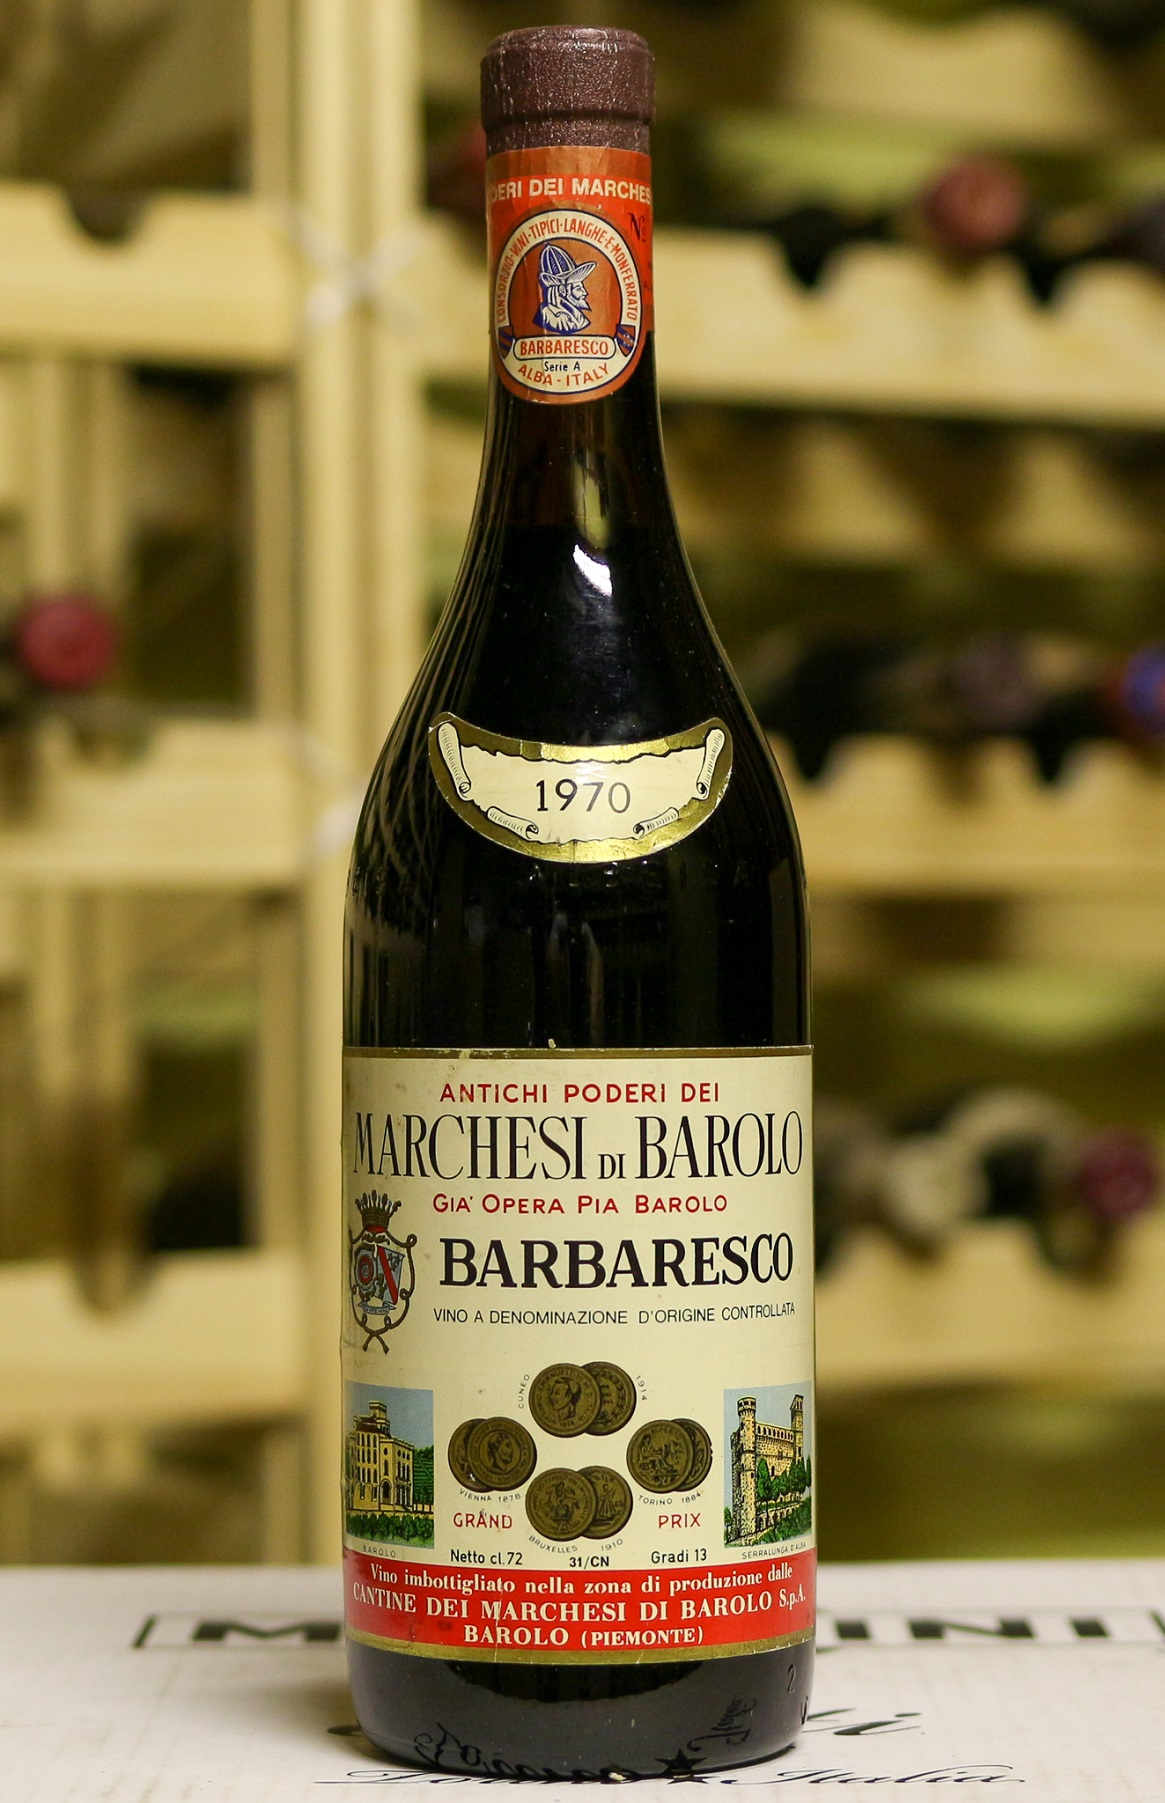 Вино Barbaresco Marchesi di Barolo 1970 года урожая